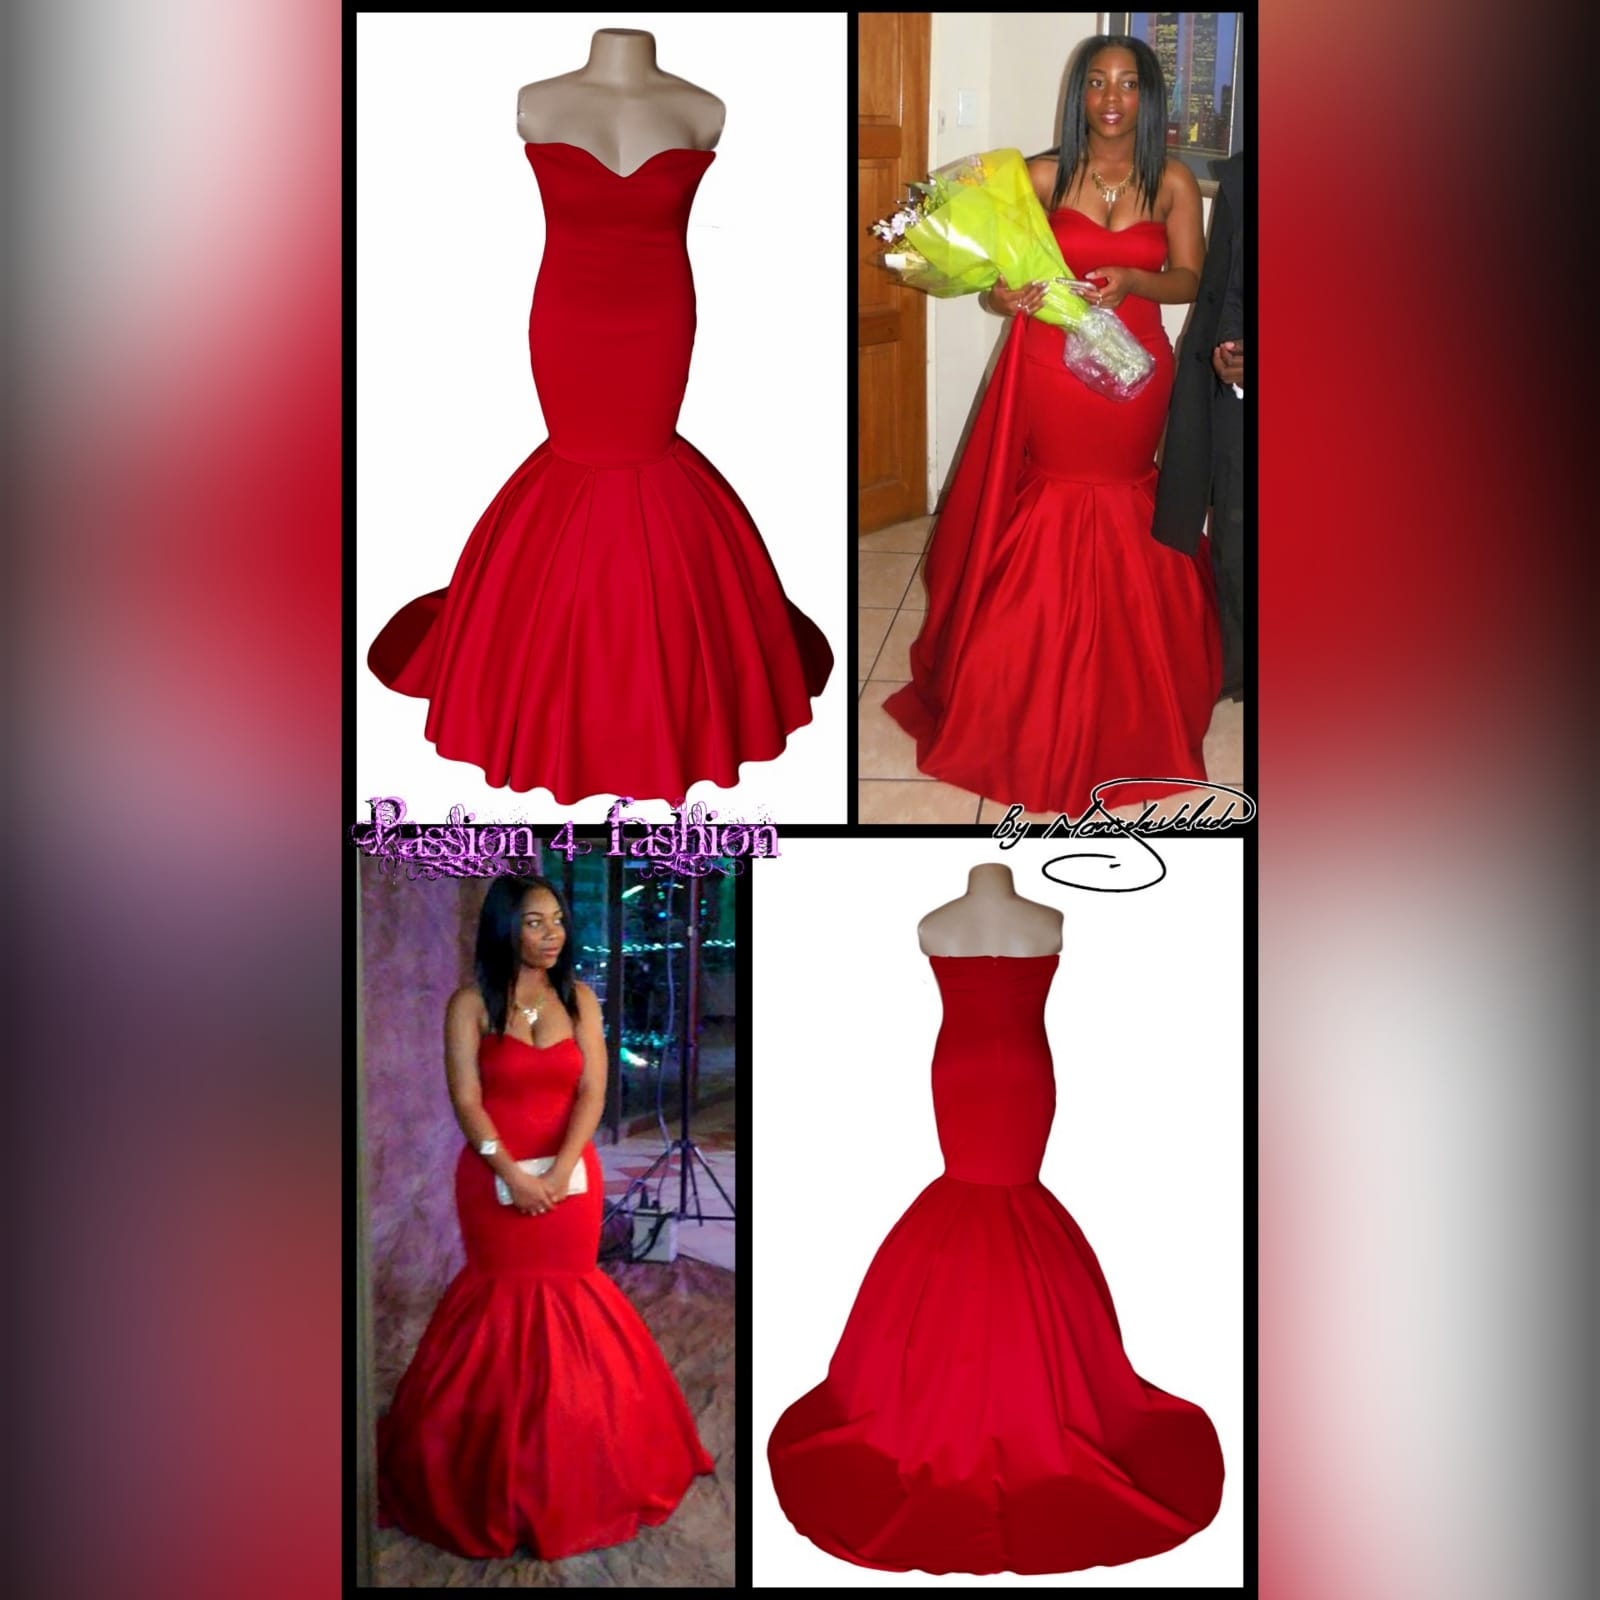 Bright red boobtube mermaid prom dress 3 bright red boobtube mermaid prom dress with a sweetheart neckline, bottom with volume and a train.